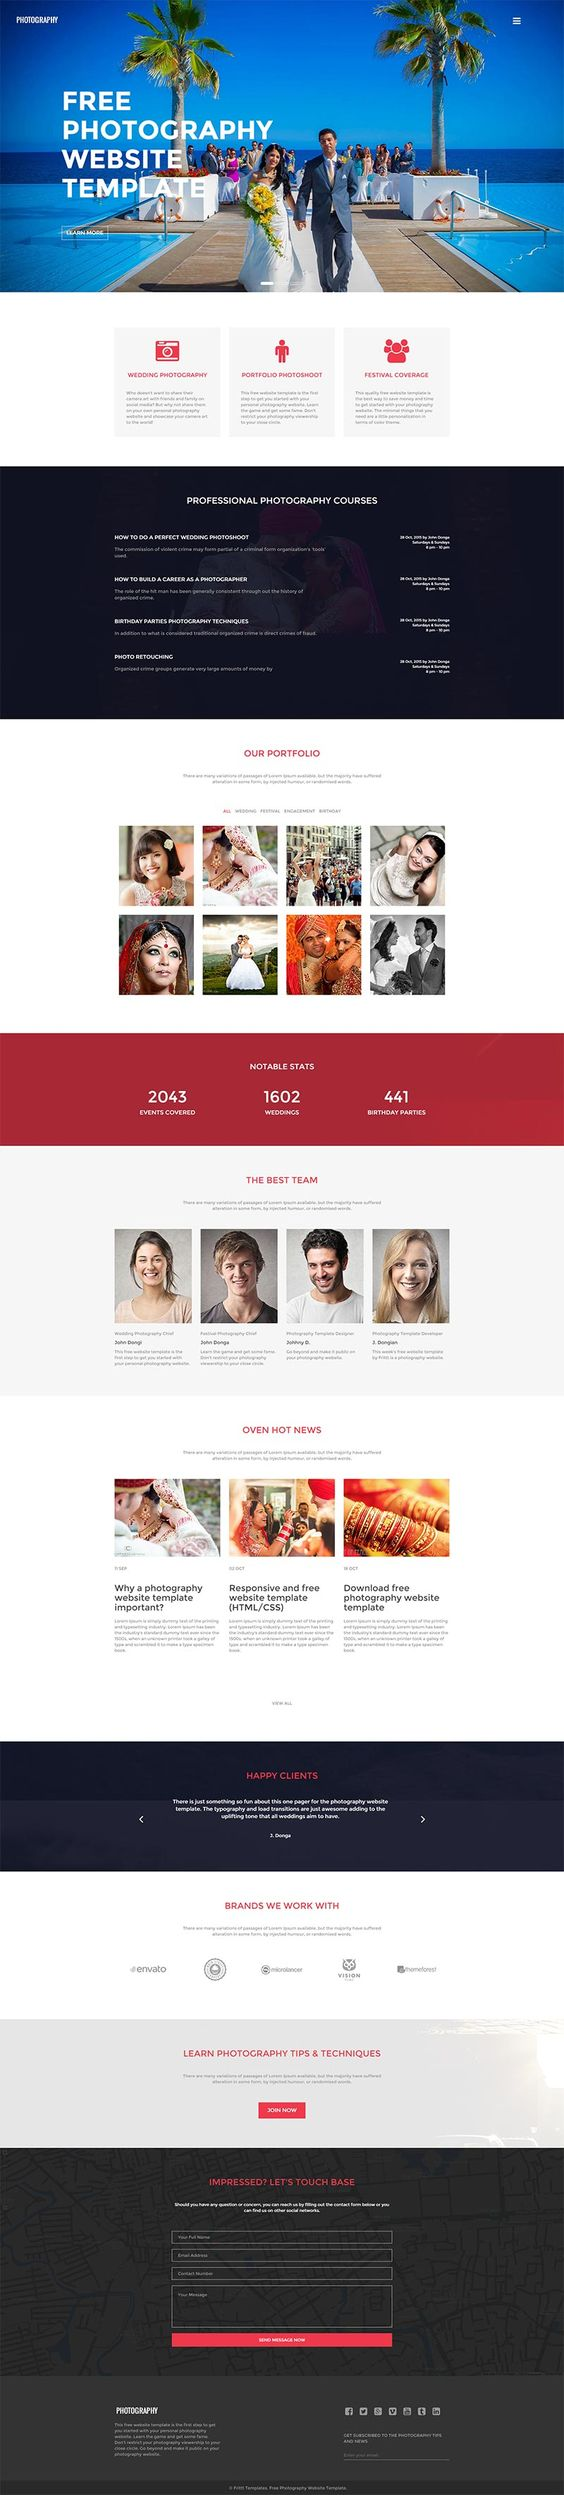 Photography website template html template pinterest photography website template html template pinterest photography website templates free photography website and photography website pronofoot35fo Gallery